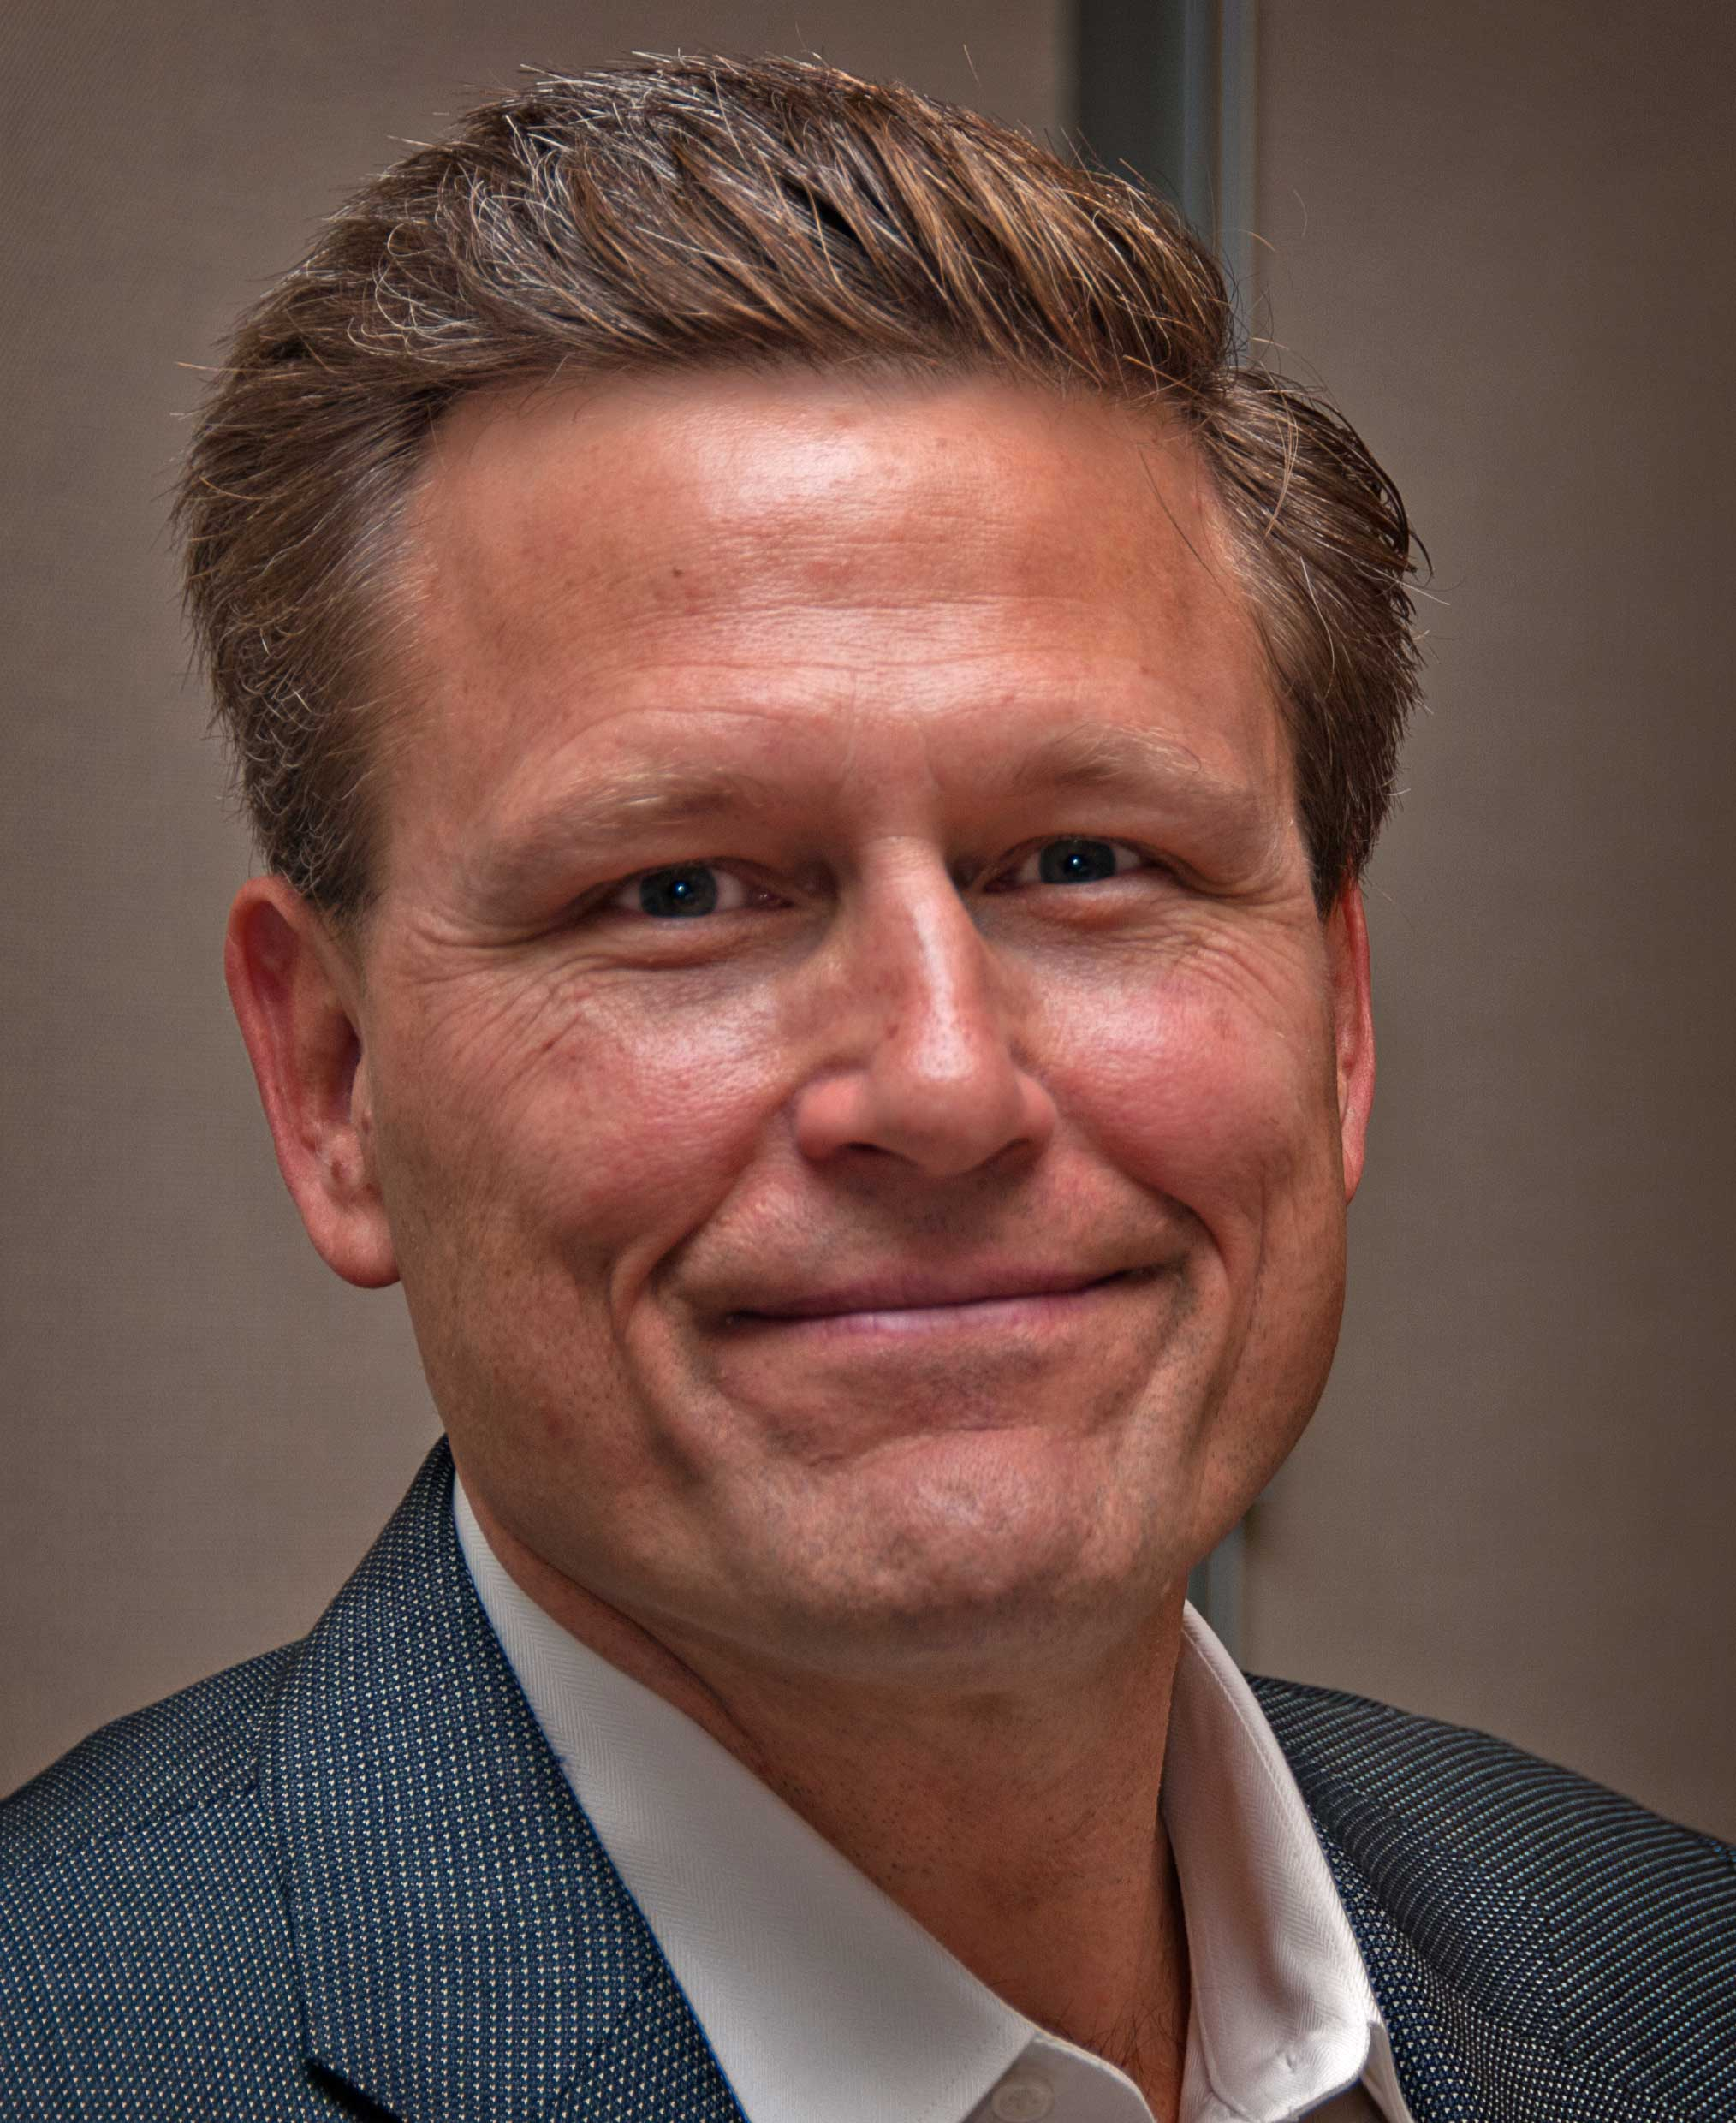 David Baldacci Net Worth